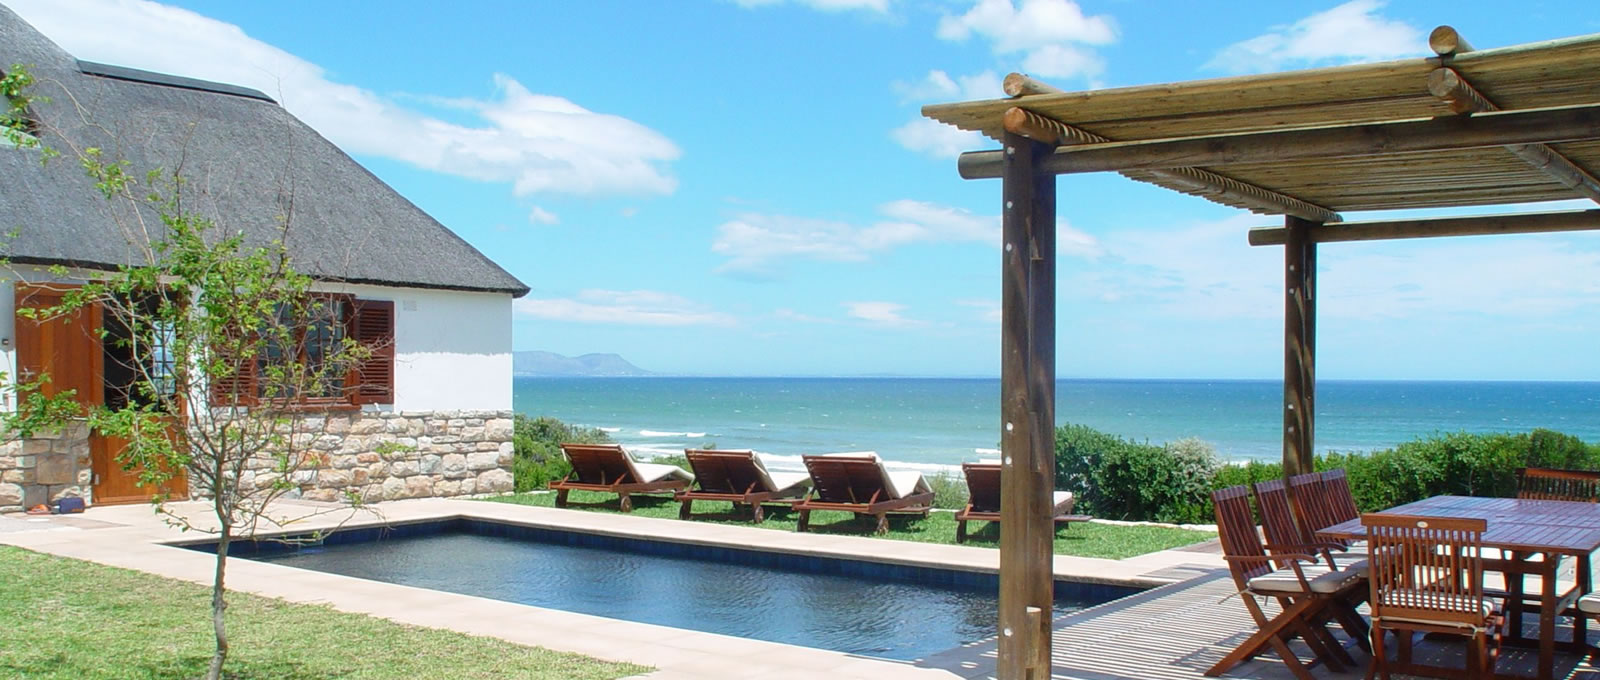 La gratitude self catering accommodation hermanus for Best houses in south africa pictures